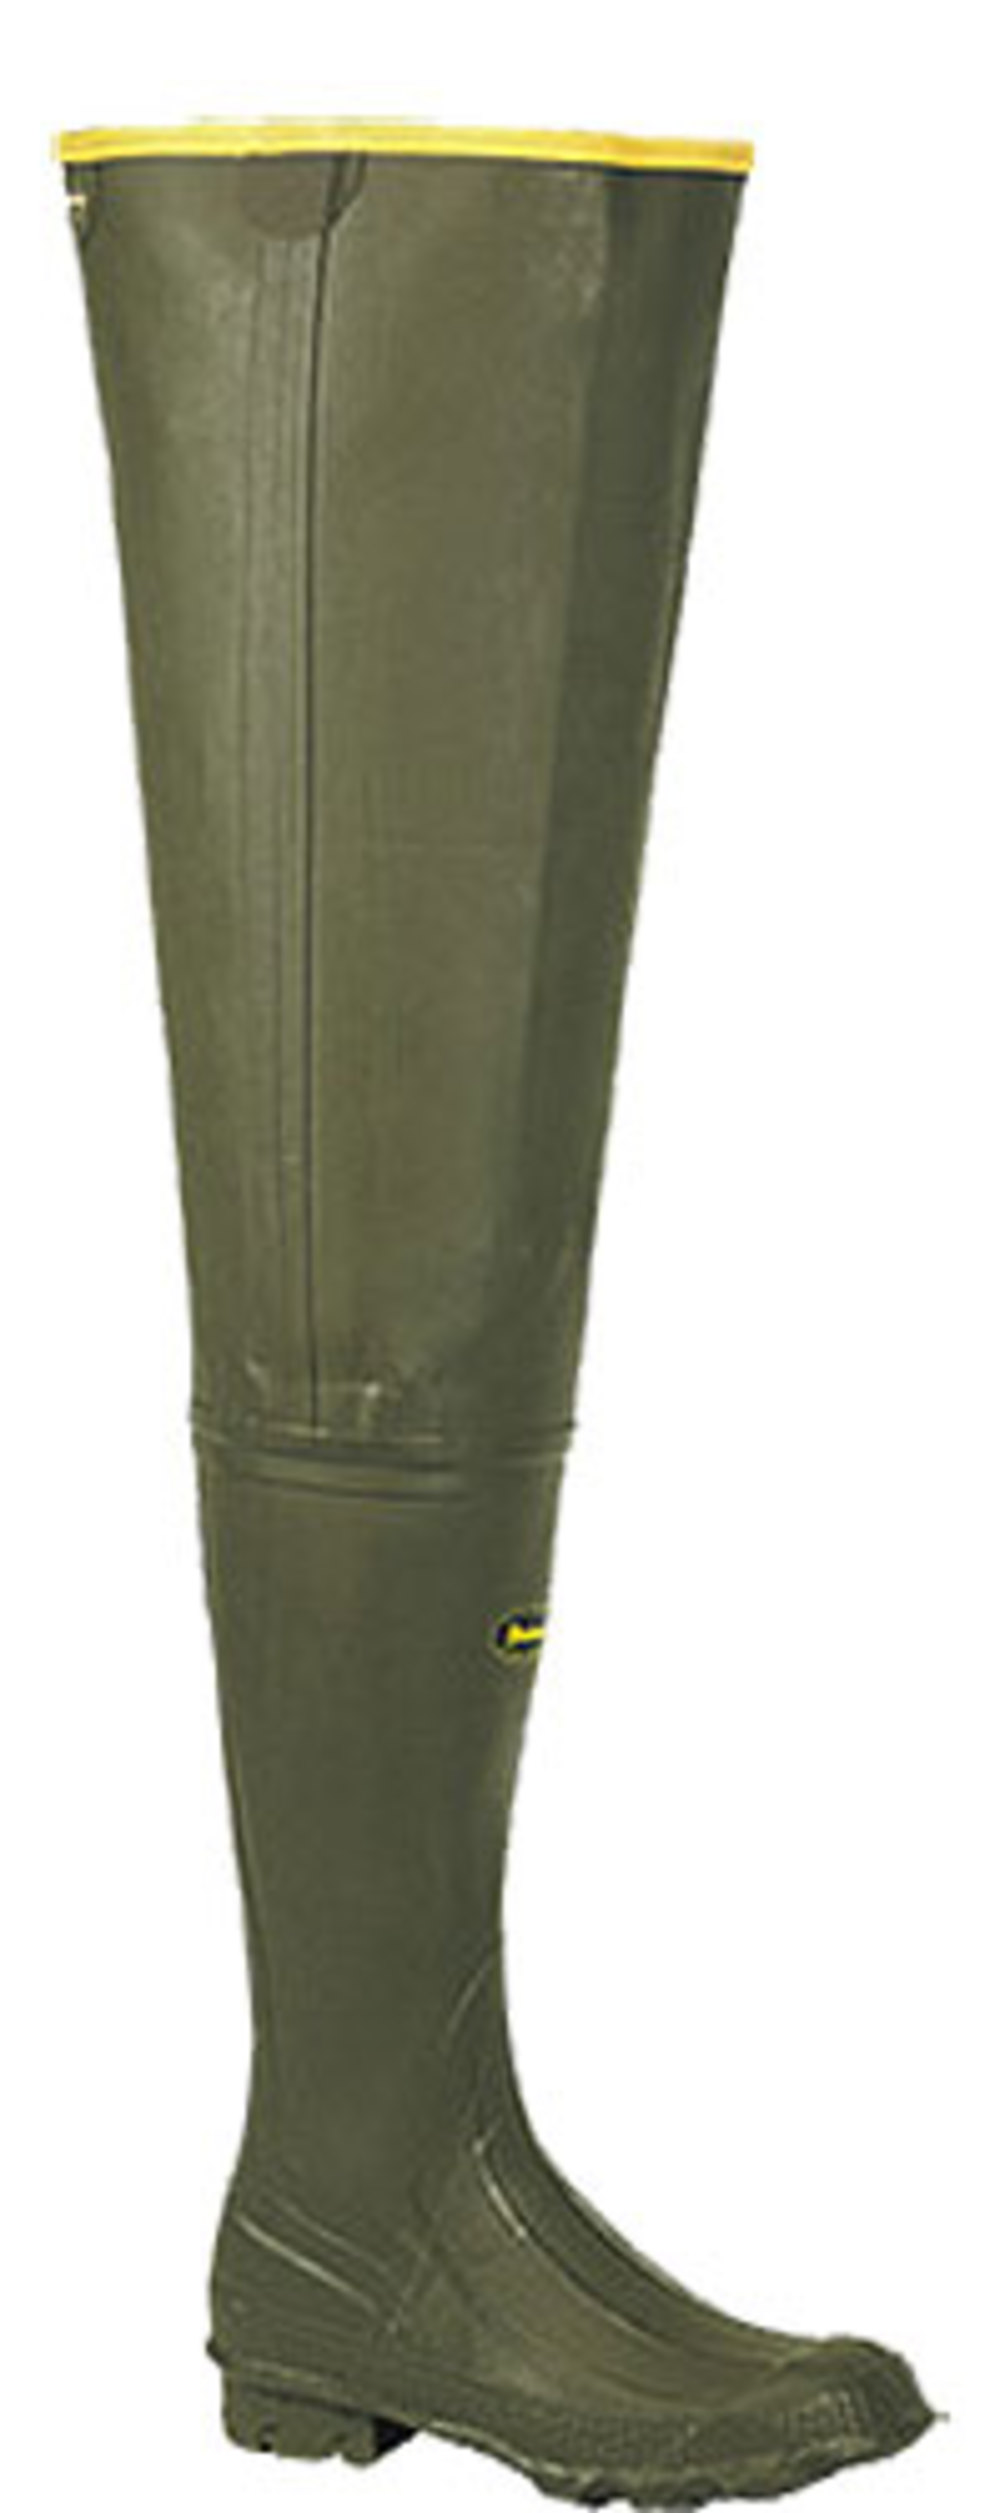 LaCrosse Men 32' Big Chief Hunting Waders by Lacrosse Footwear Inc.